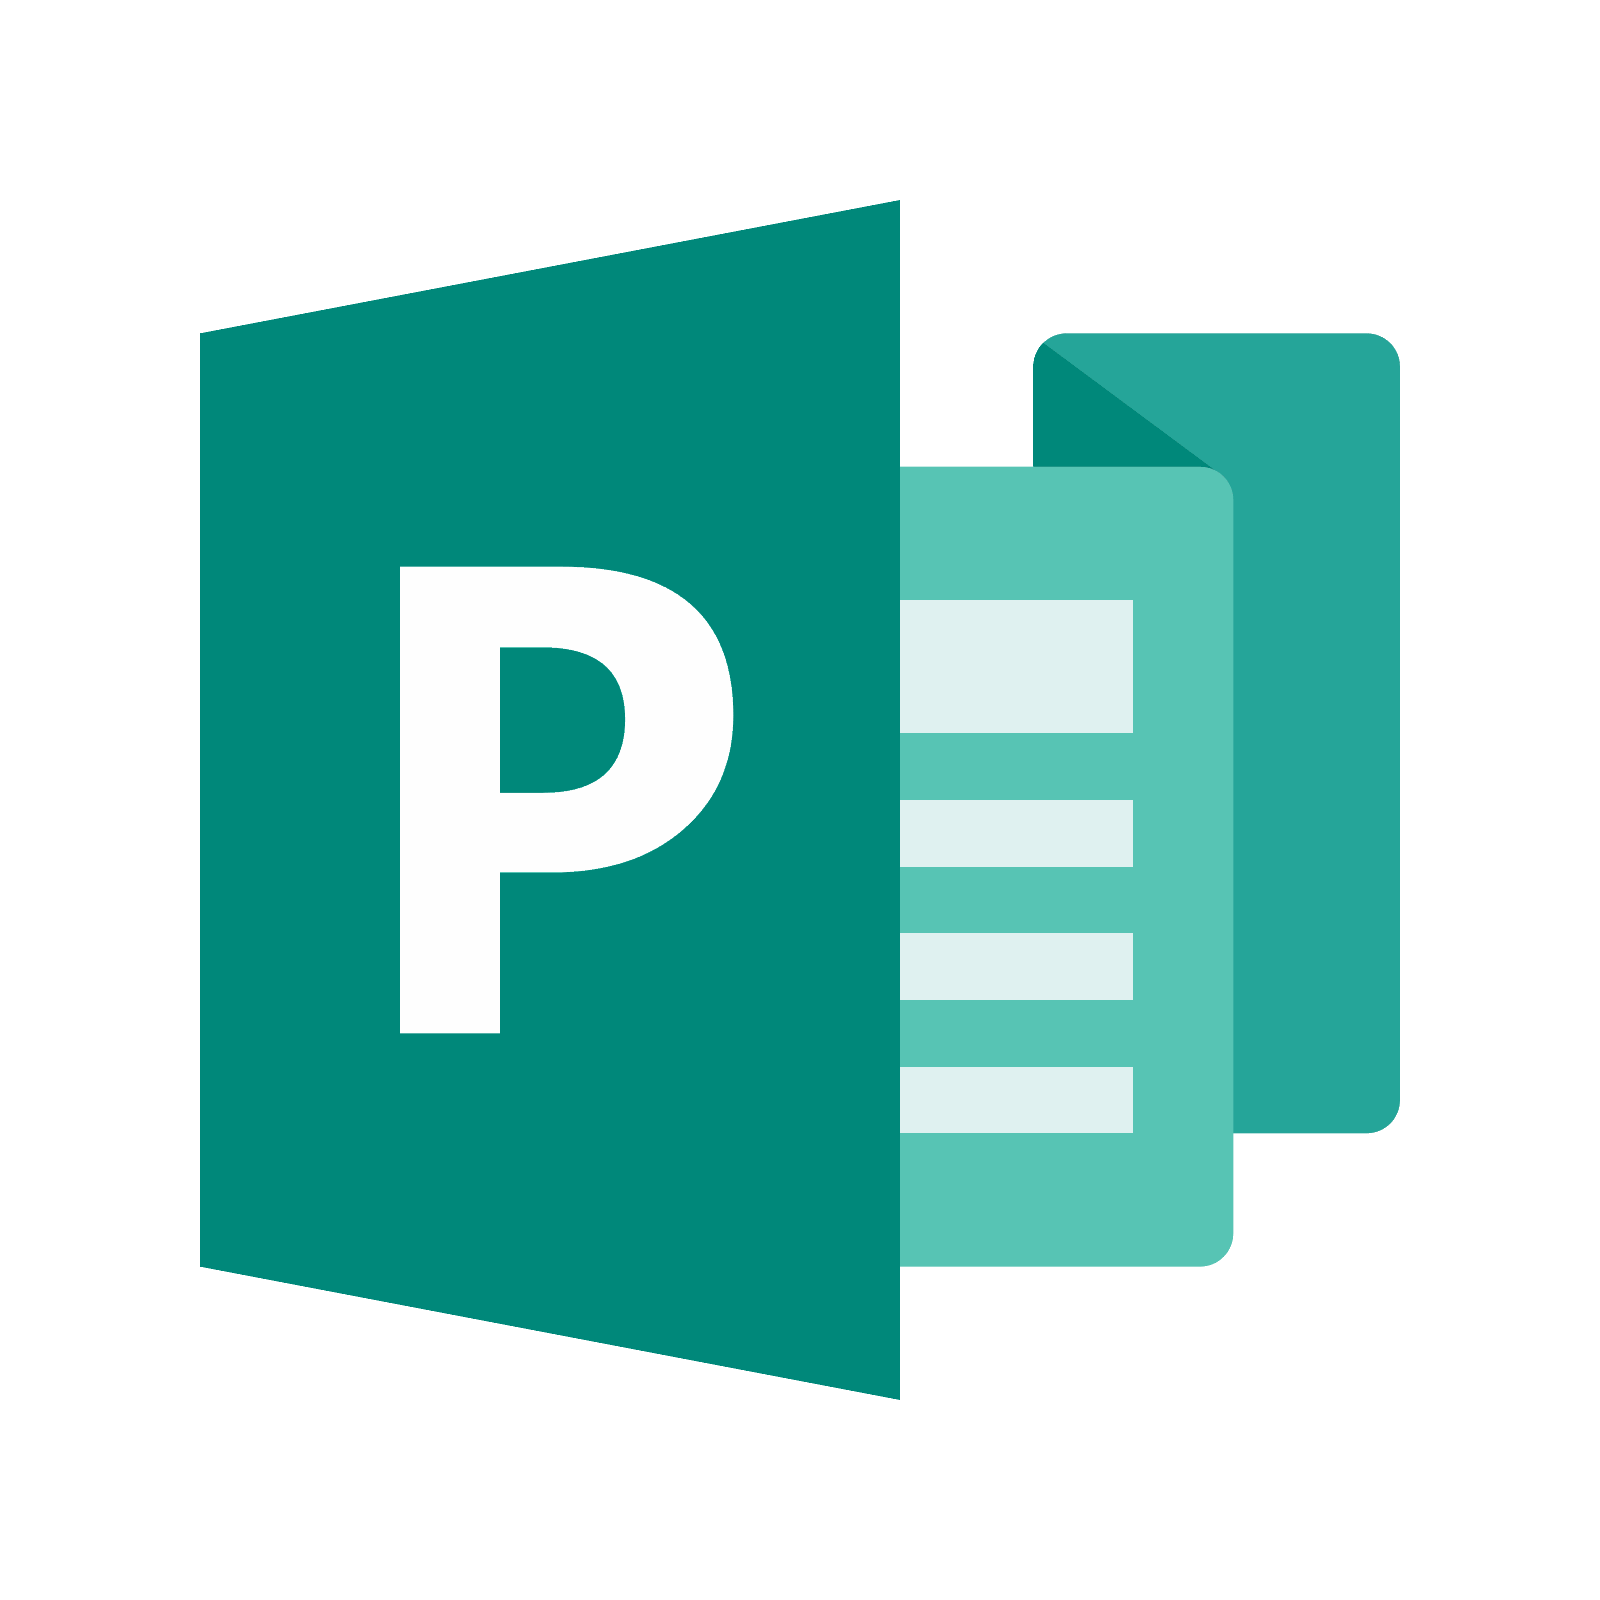 Powerpoint computer icons excel. Microsoft clipart publisher microsoft